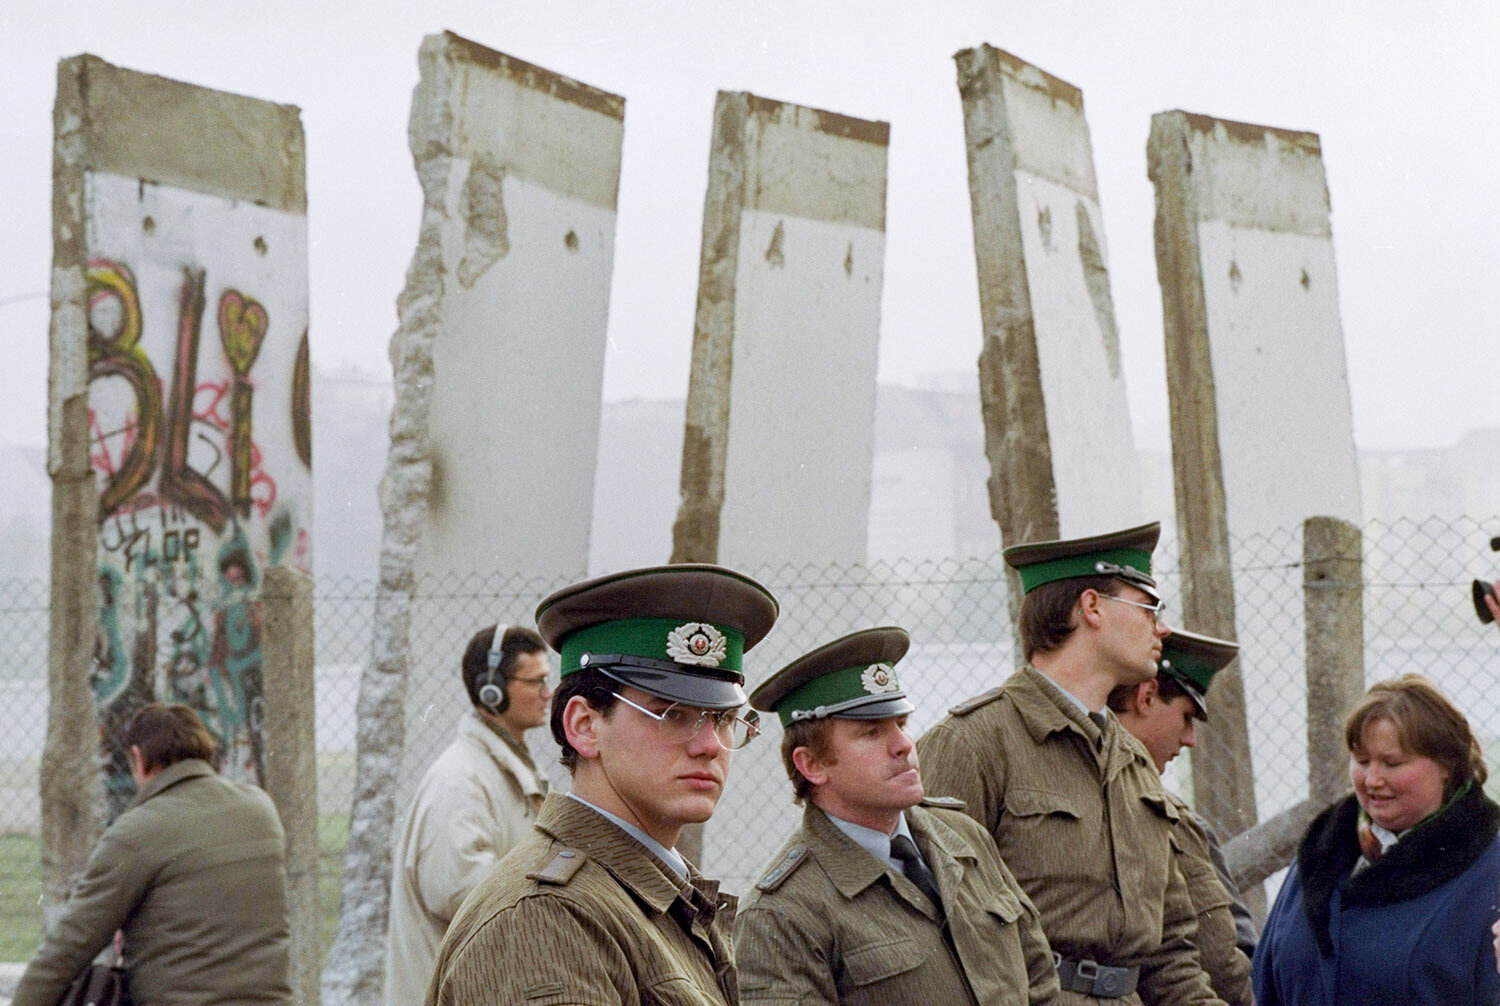 East German border guards stand in front of segments of the Berlin Wall, which were removed to open the wall at Potsdamer Platz passage, Nov. 13, 1989, in Berlin. (AP Photo/John Gaps III, File)